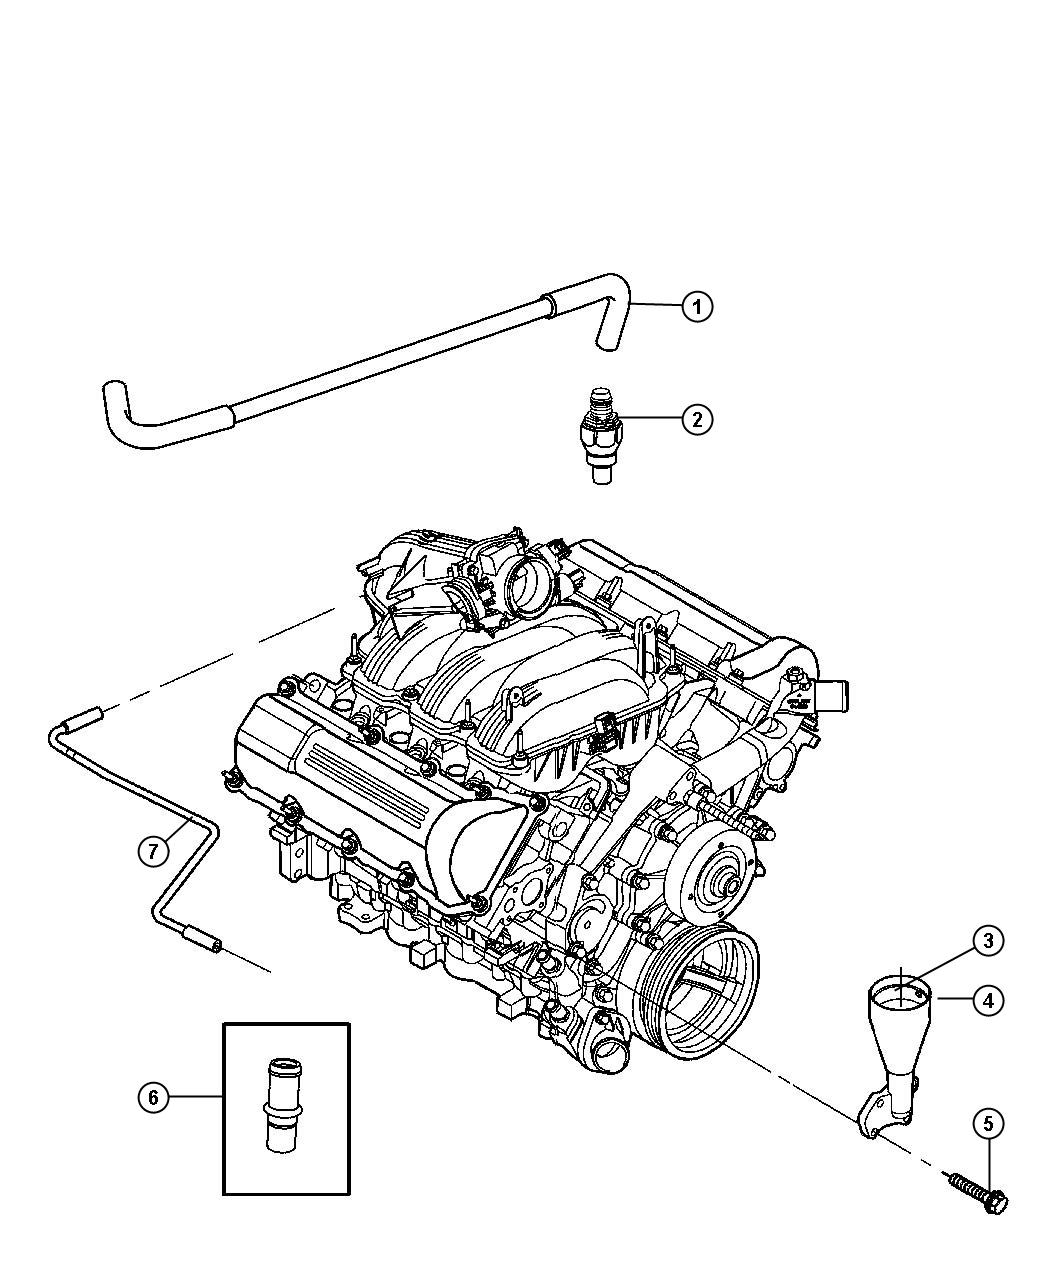 Jeep Commander Used for: PCV VALVE AND HOUSING, VALVE